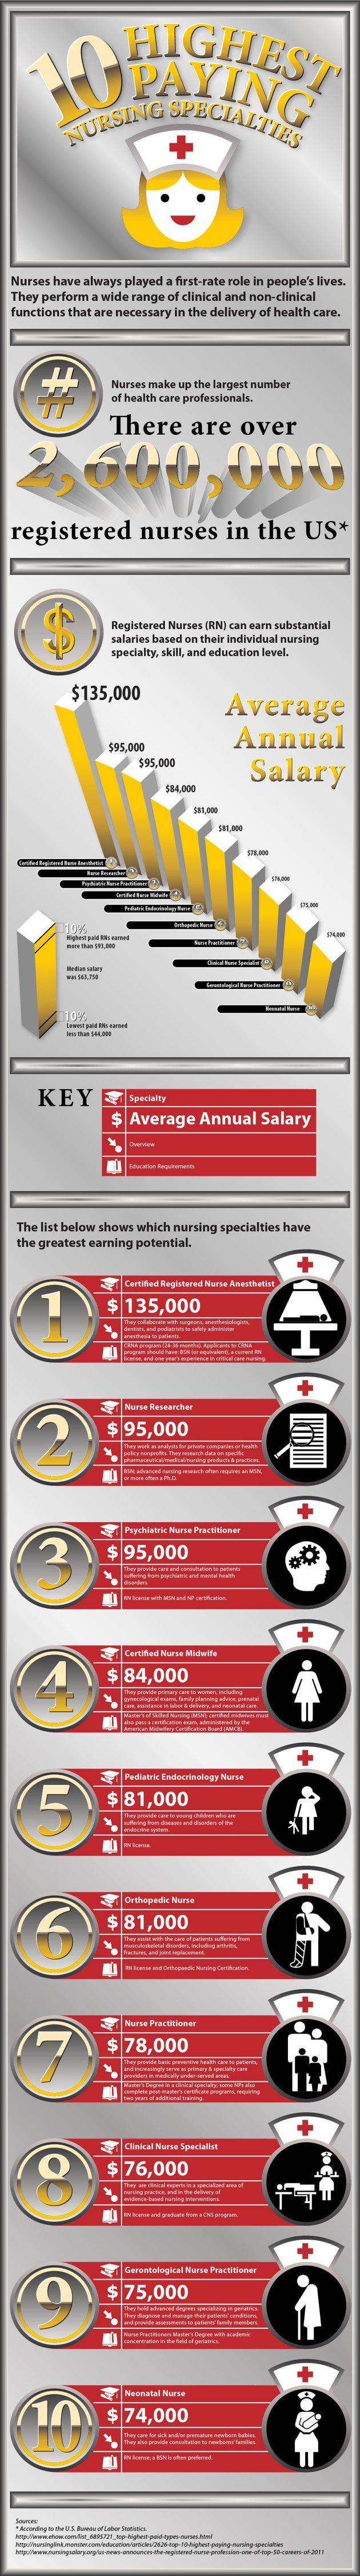 10 Highest Paying Nursing Specialities